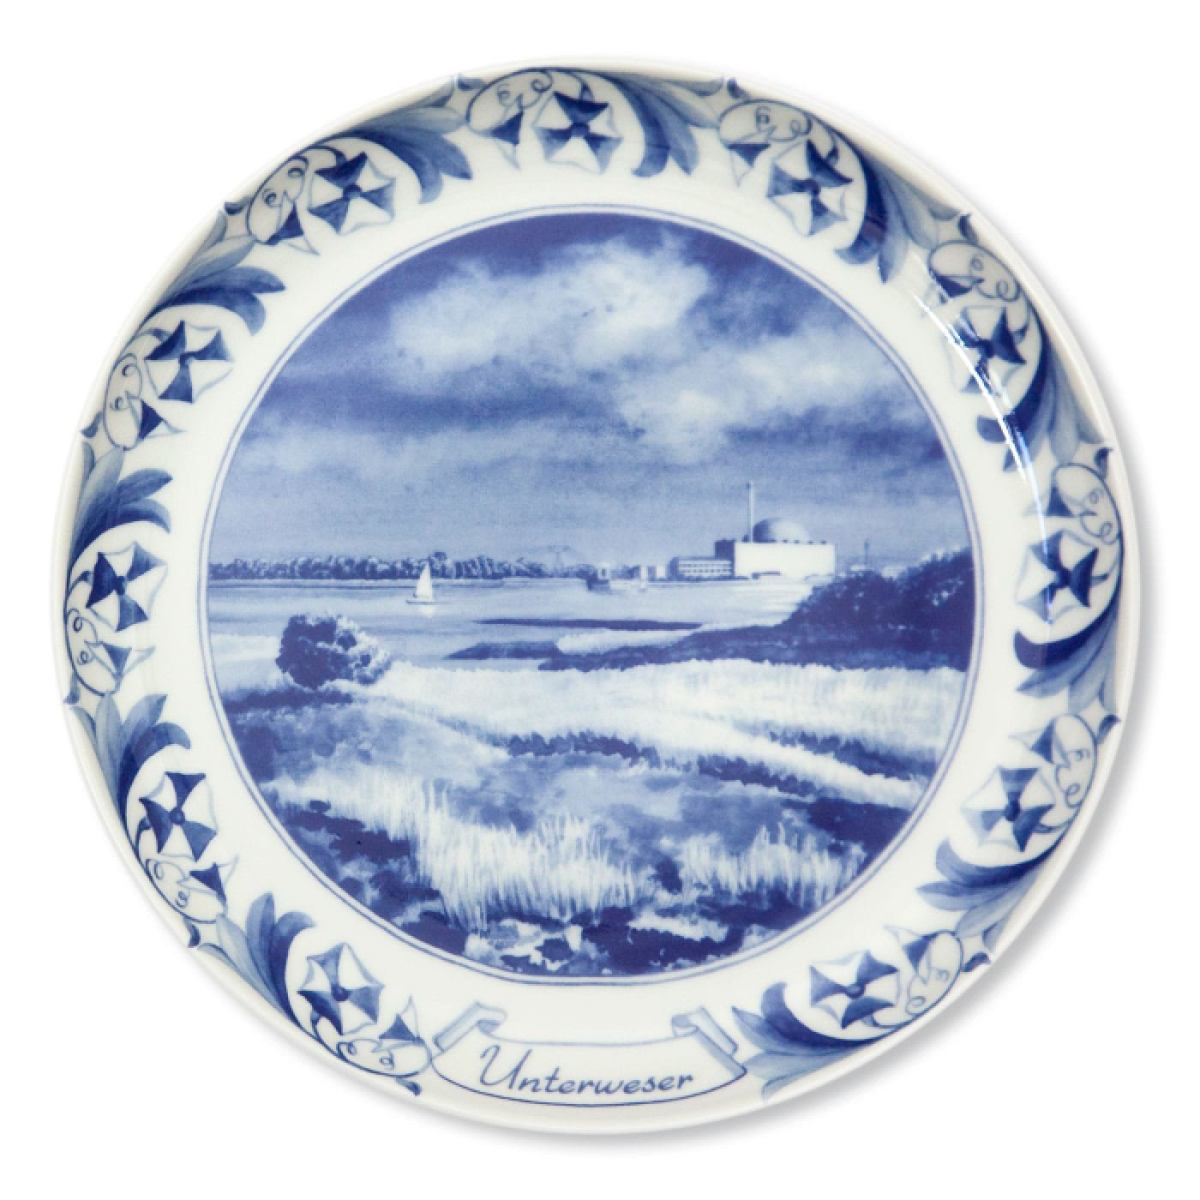 Nuclear Plate Unterweser made of porcelain | Kunstbaron